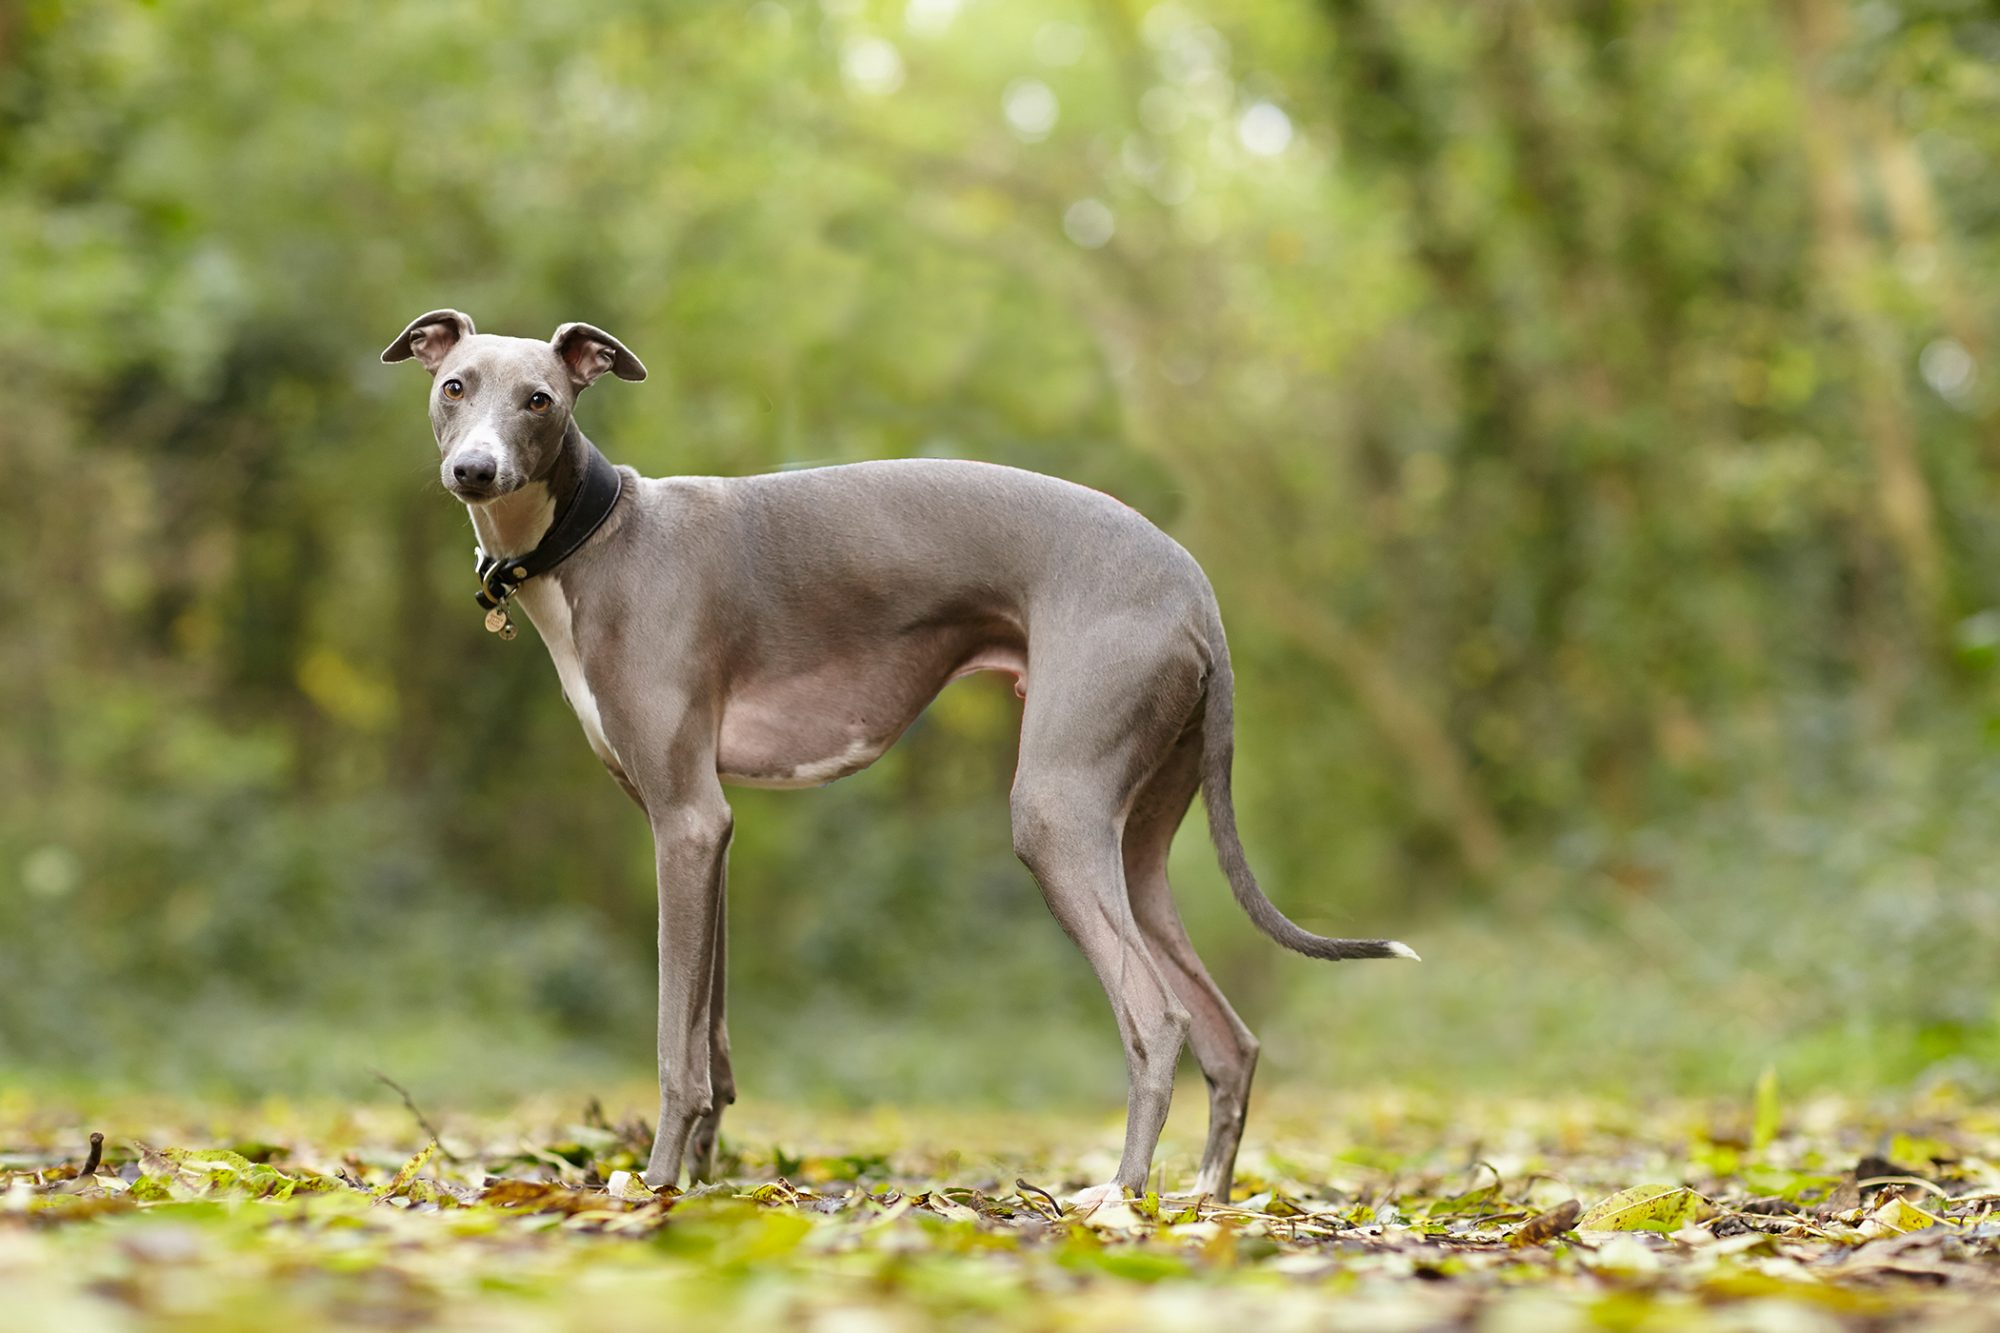 whippet dog standing in wooded area